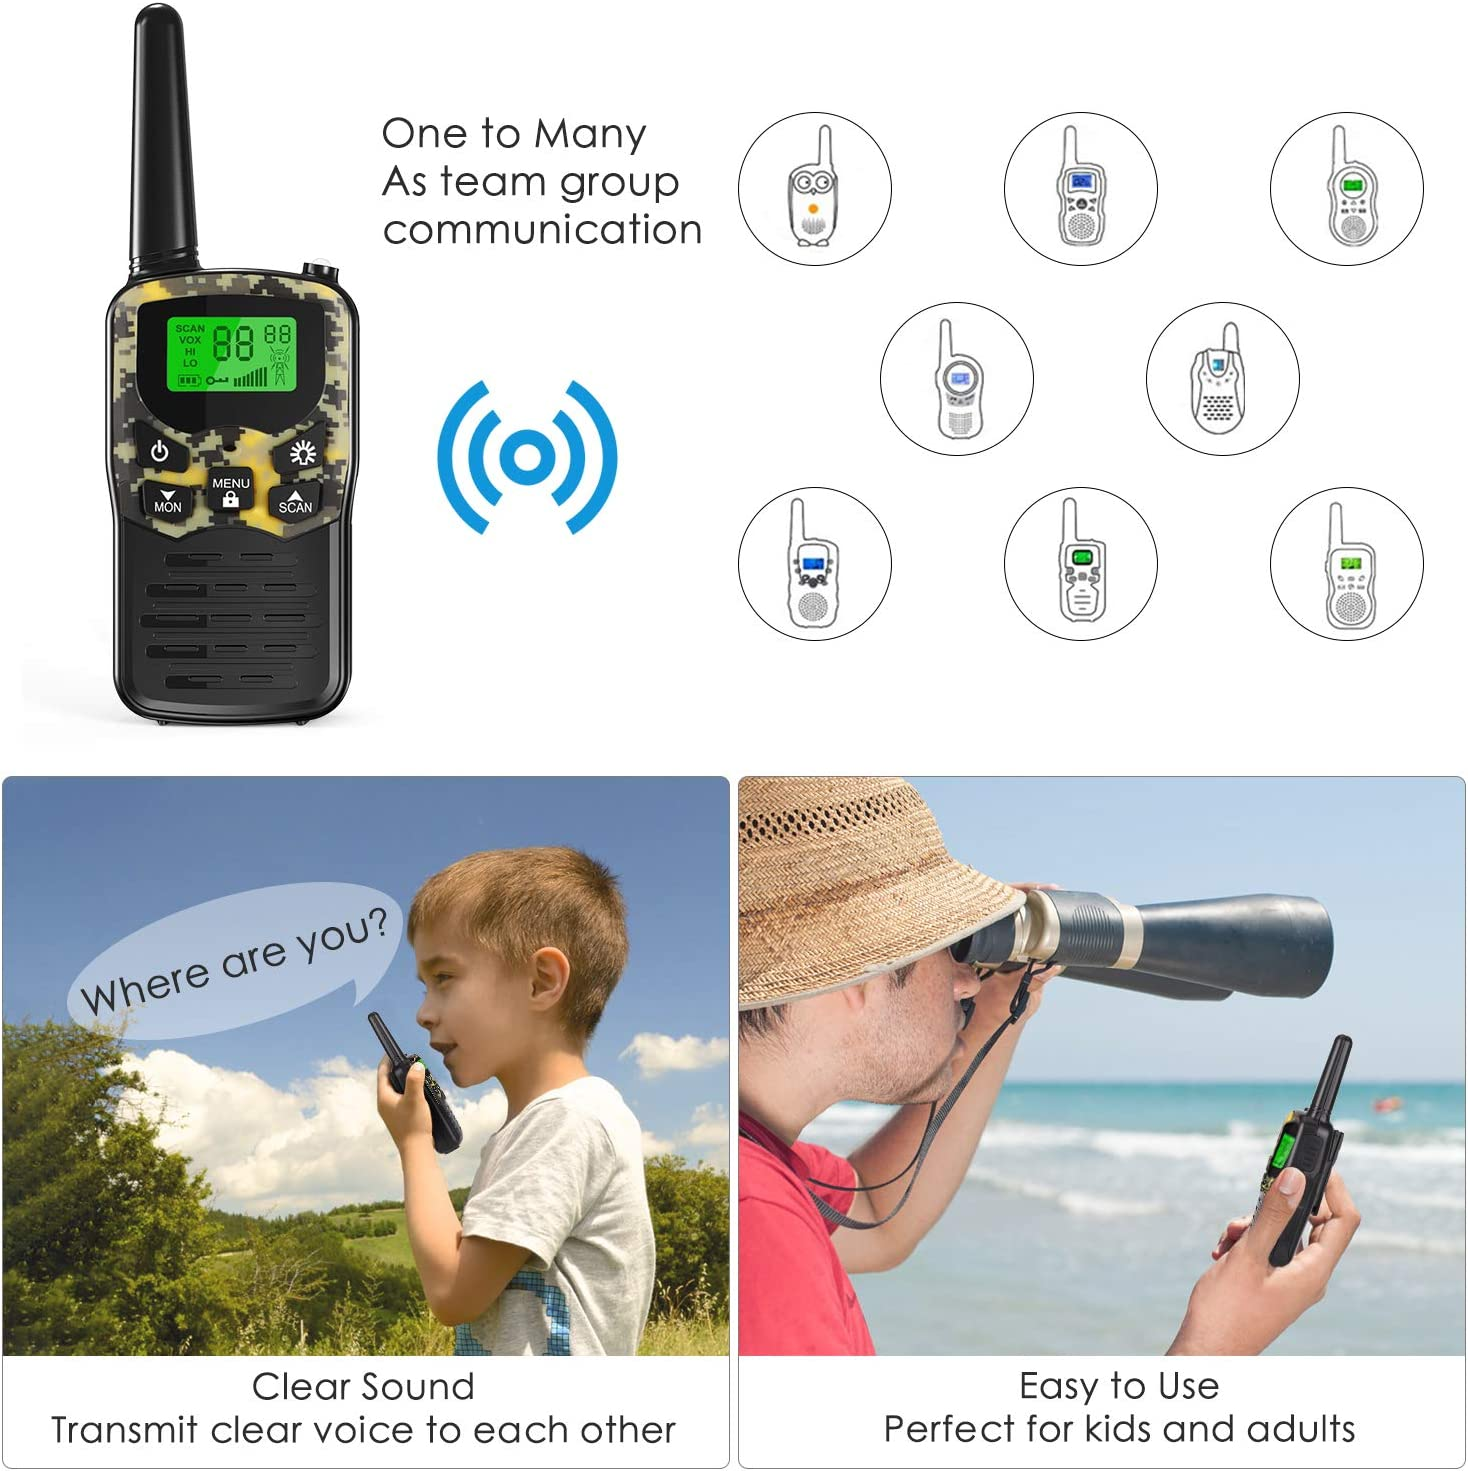 Toy Gifts for Girls and Boys 2 Pack, Red EKOOS Walkie Talkies Long Range for Kids and Adults Two Way Radios Up to 5 Miles in Open Areas with 22 Channels LCD Flashlight for Camping Hiking Fishing